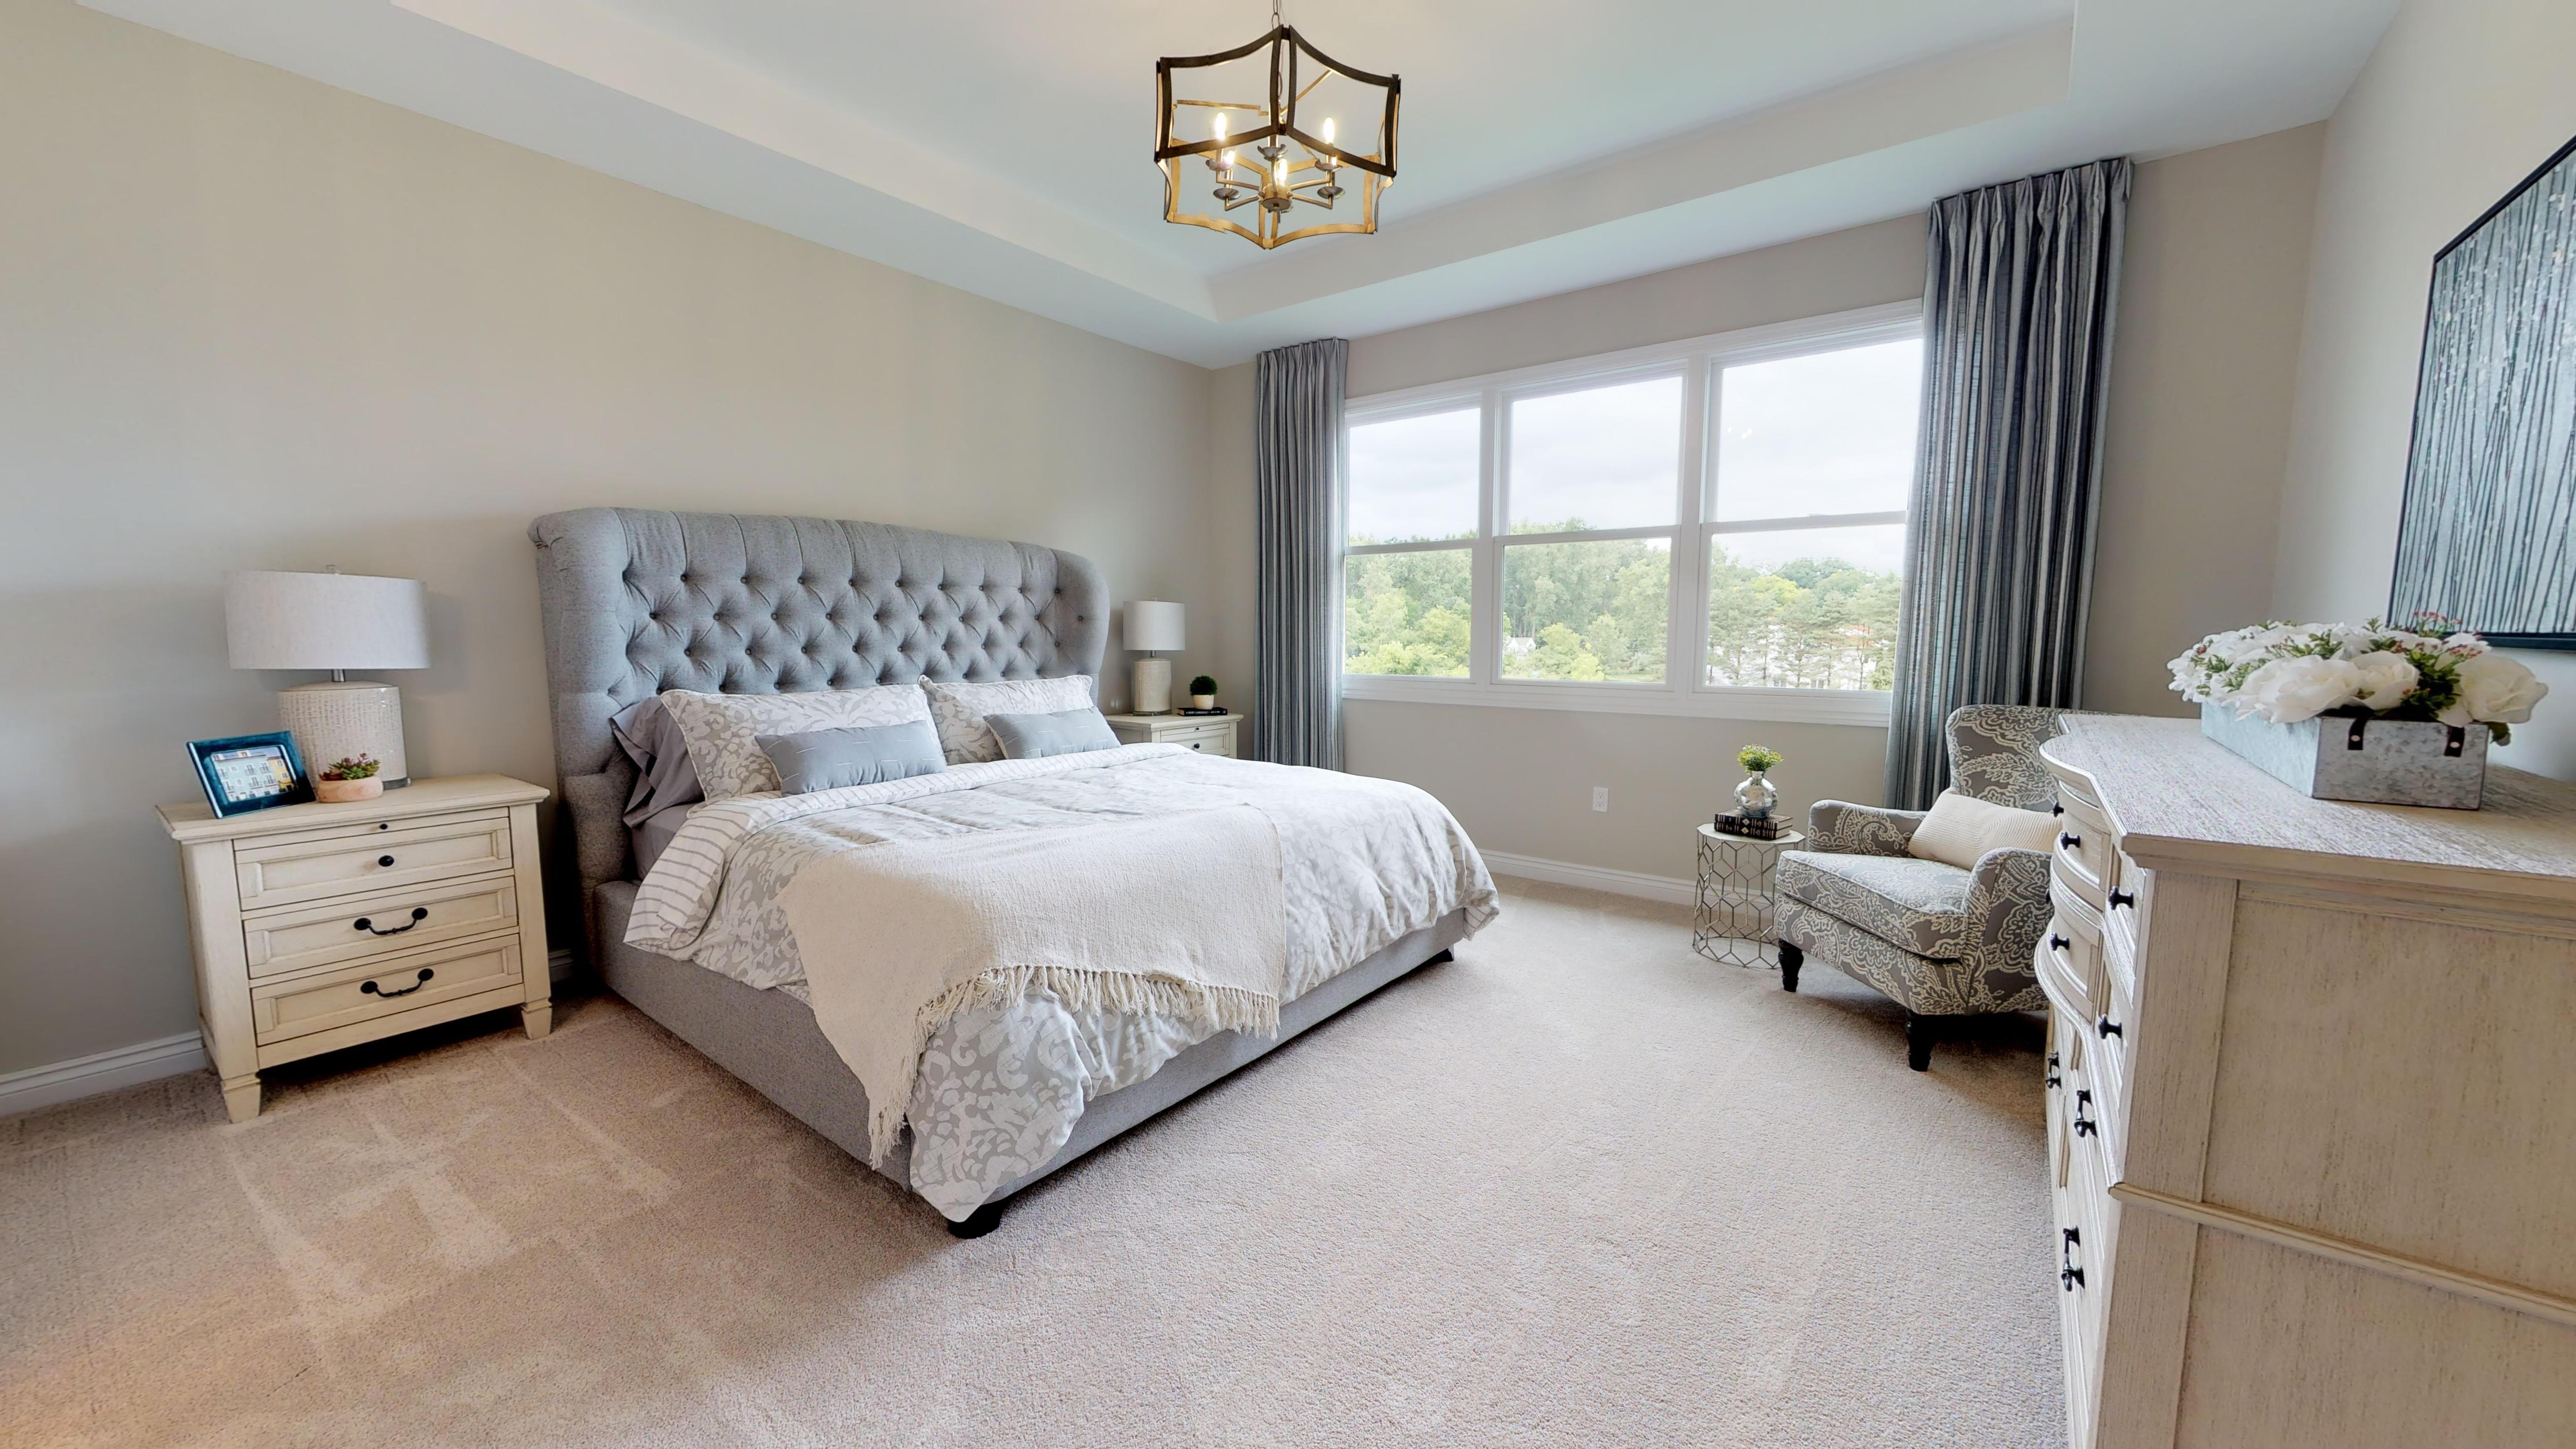 Bedroom featured in The Charlevoix  By AP Builders in Detroit, MI